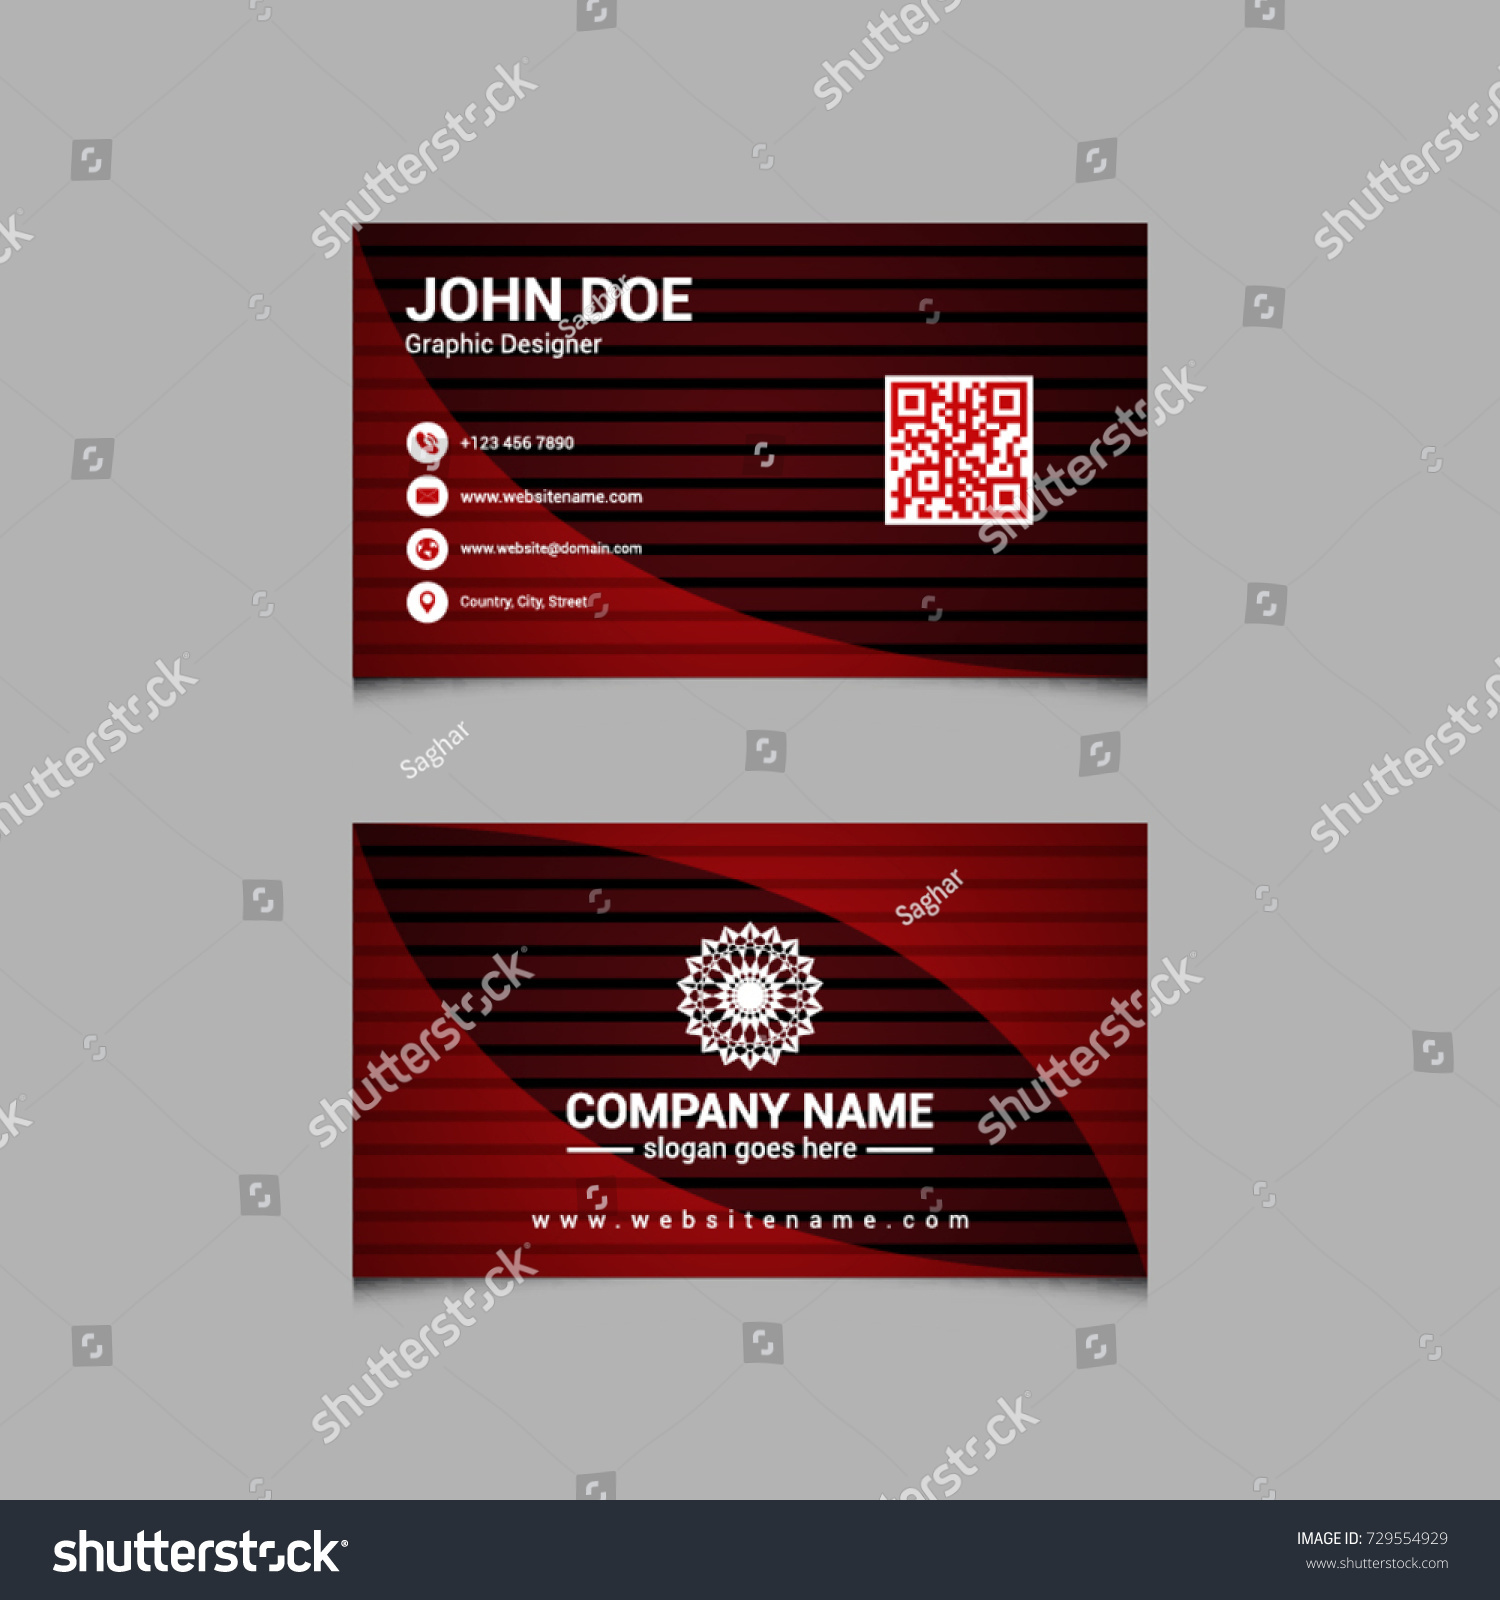 Creative Red Business Card QR Code Stock Vector HD (Royalty Free ...